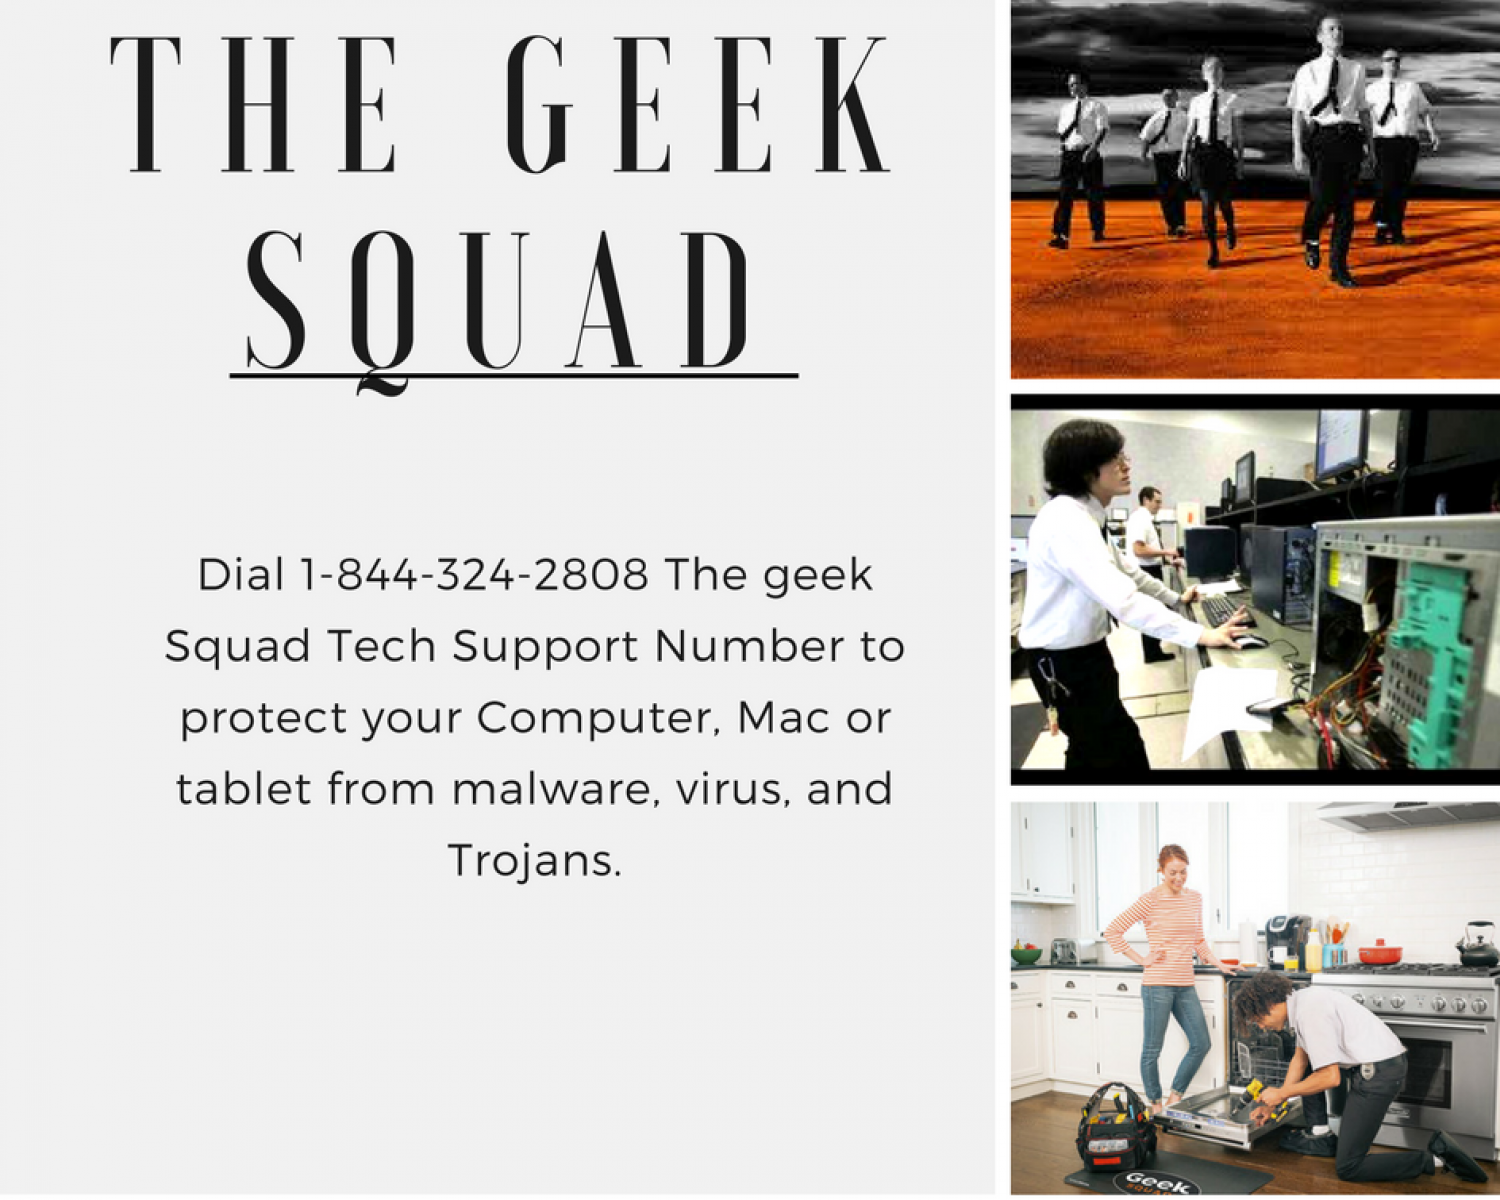 The Geek Squad Tech Support 1-844-324-2808  Number Infographic